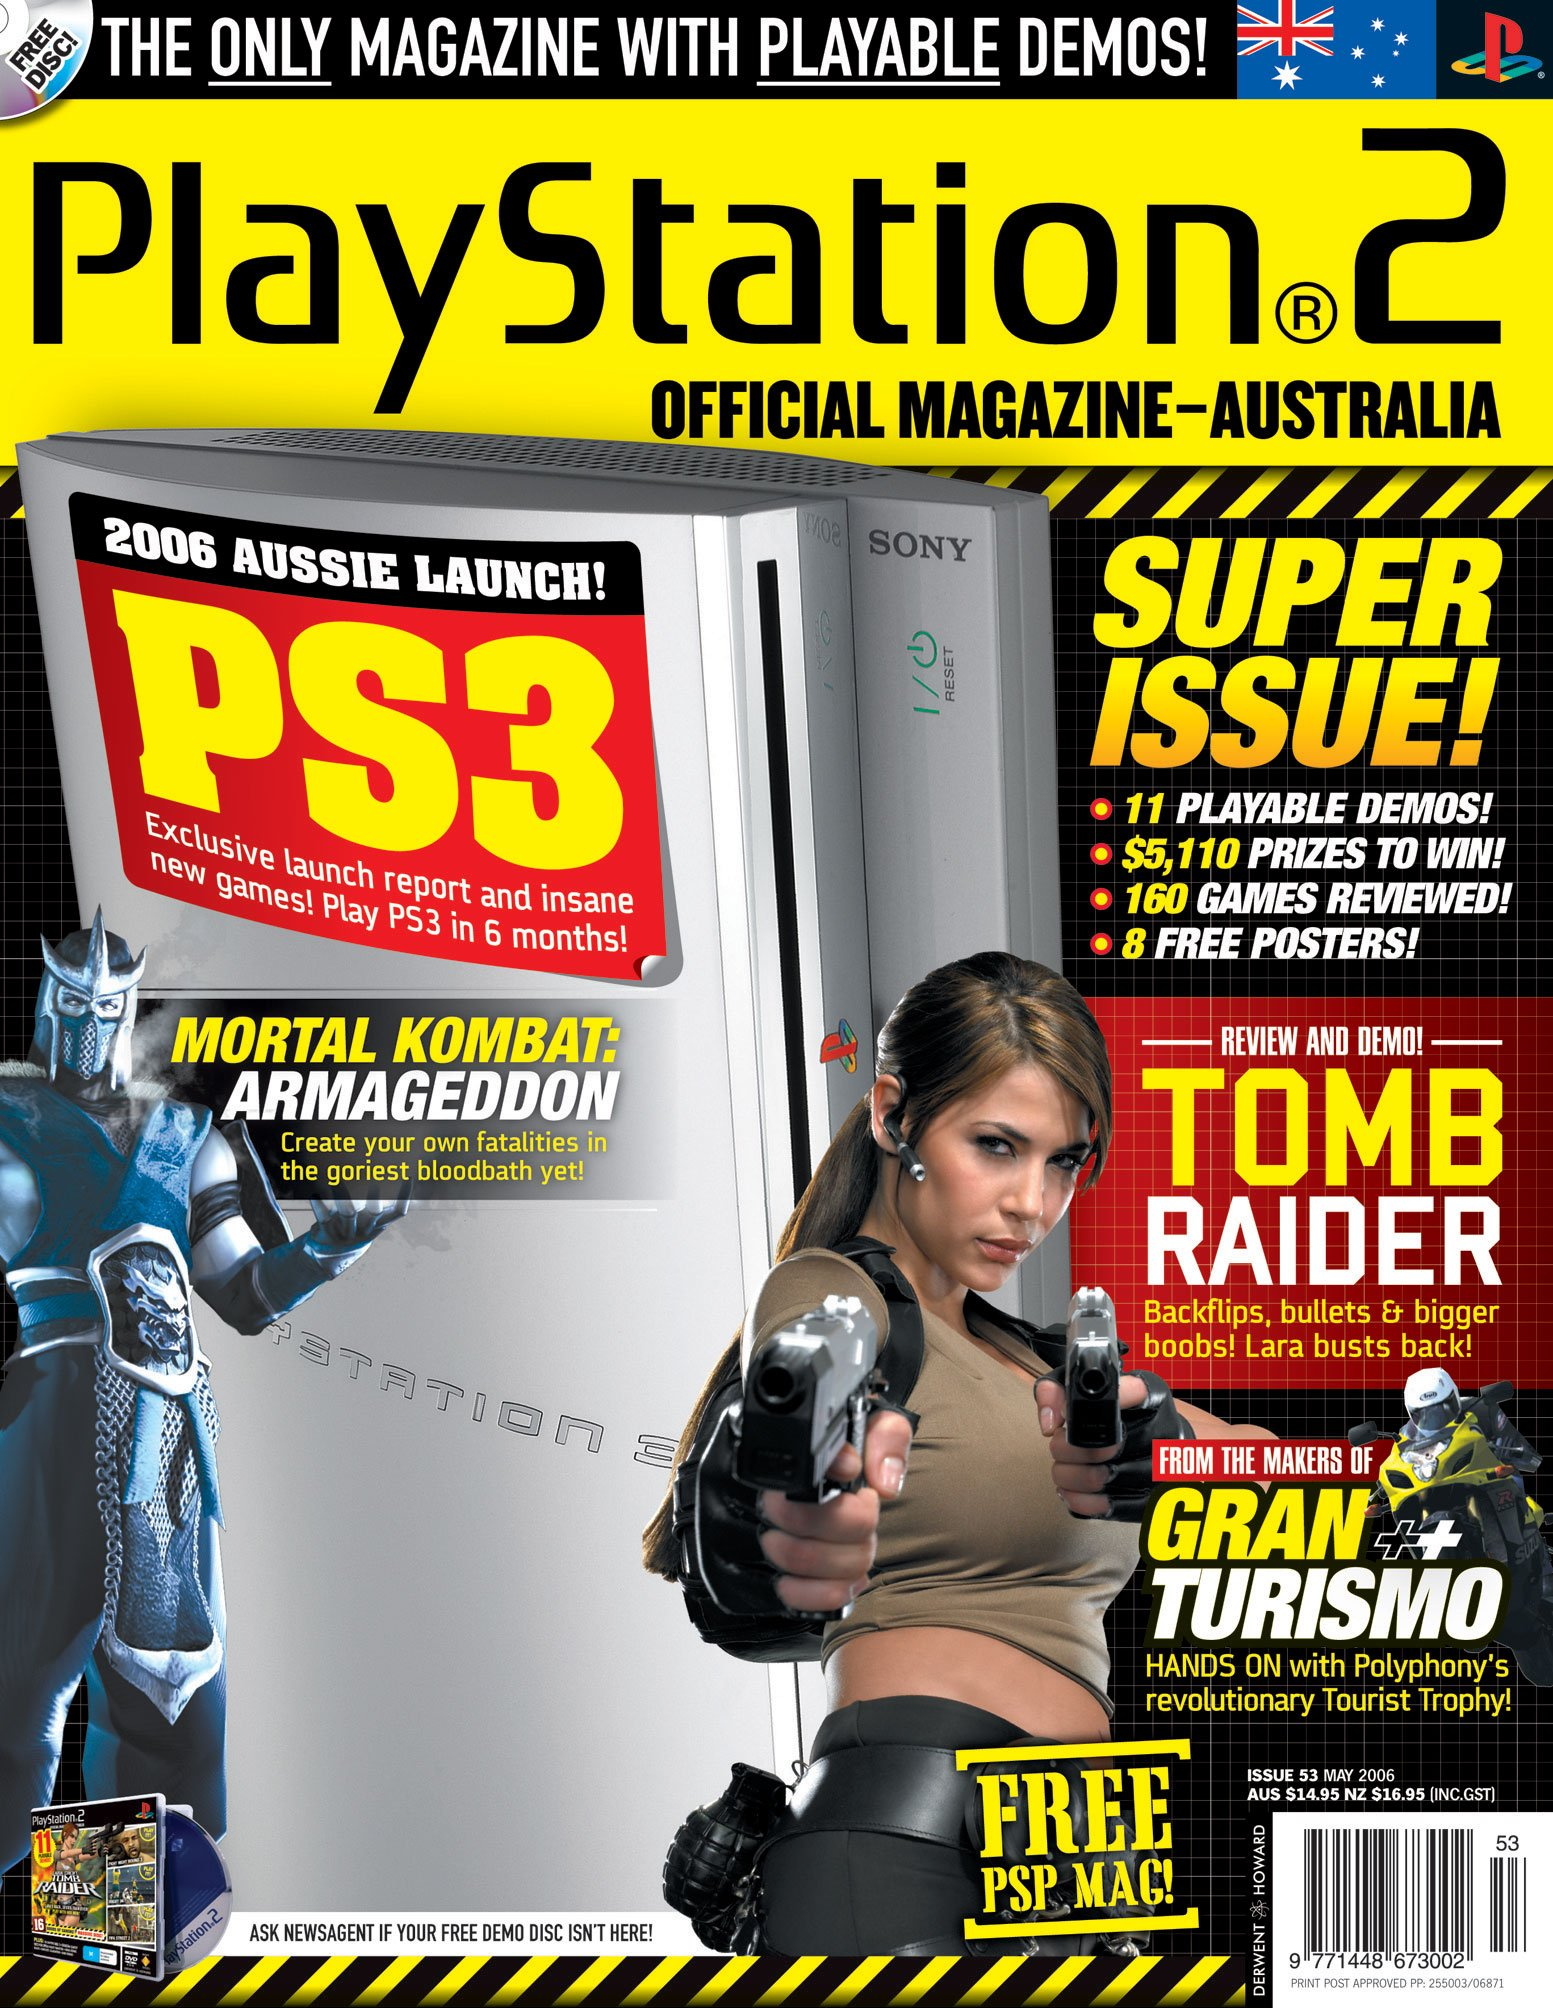 Playstation 2 Official Magazine (AUS) Issue 53 (May 2006)